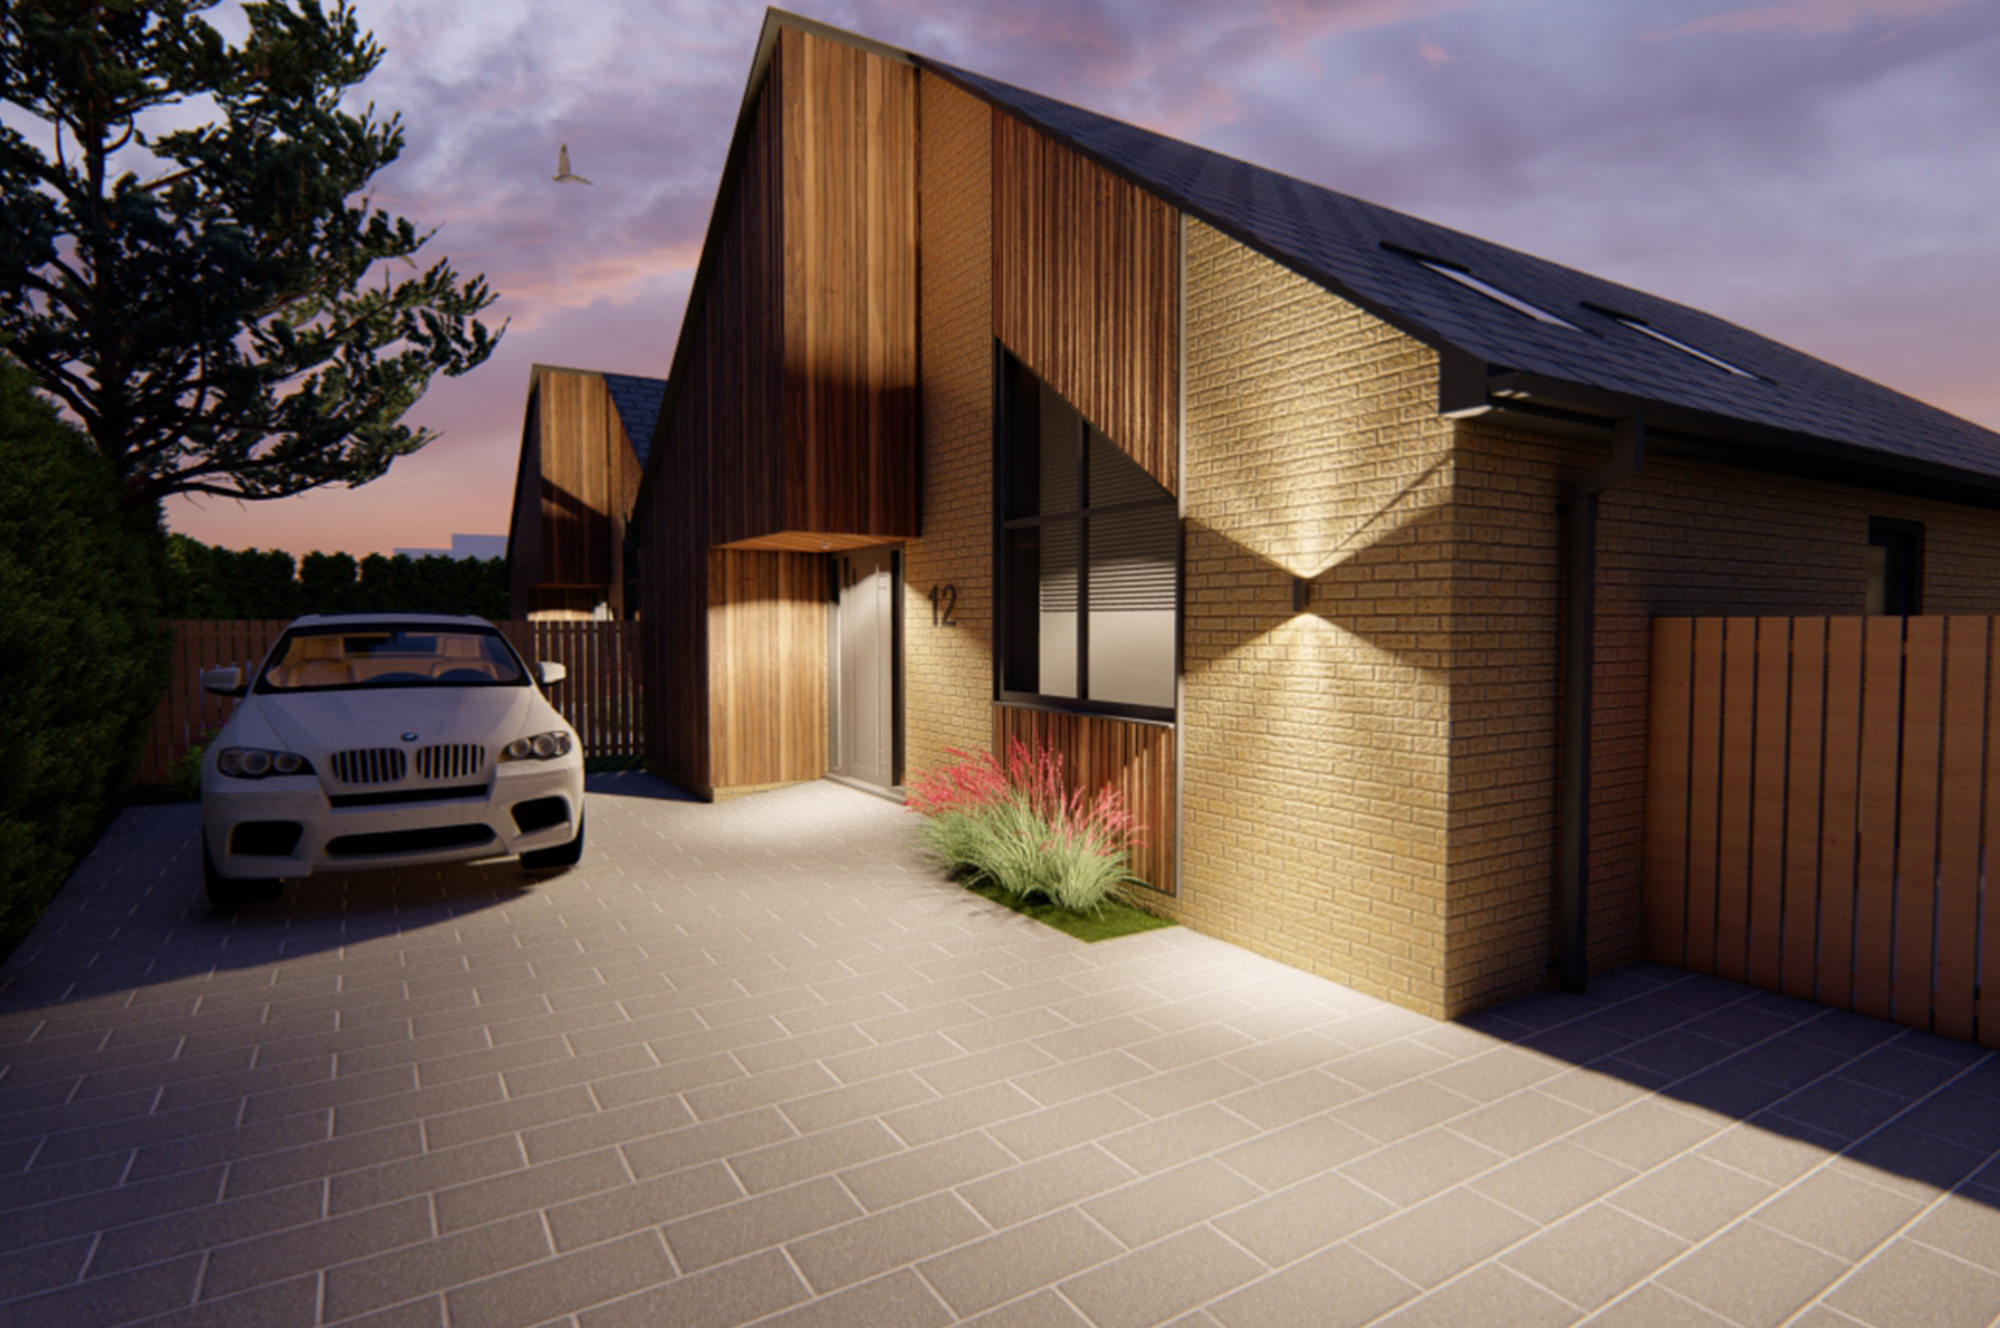 SEAFORD PROJECT